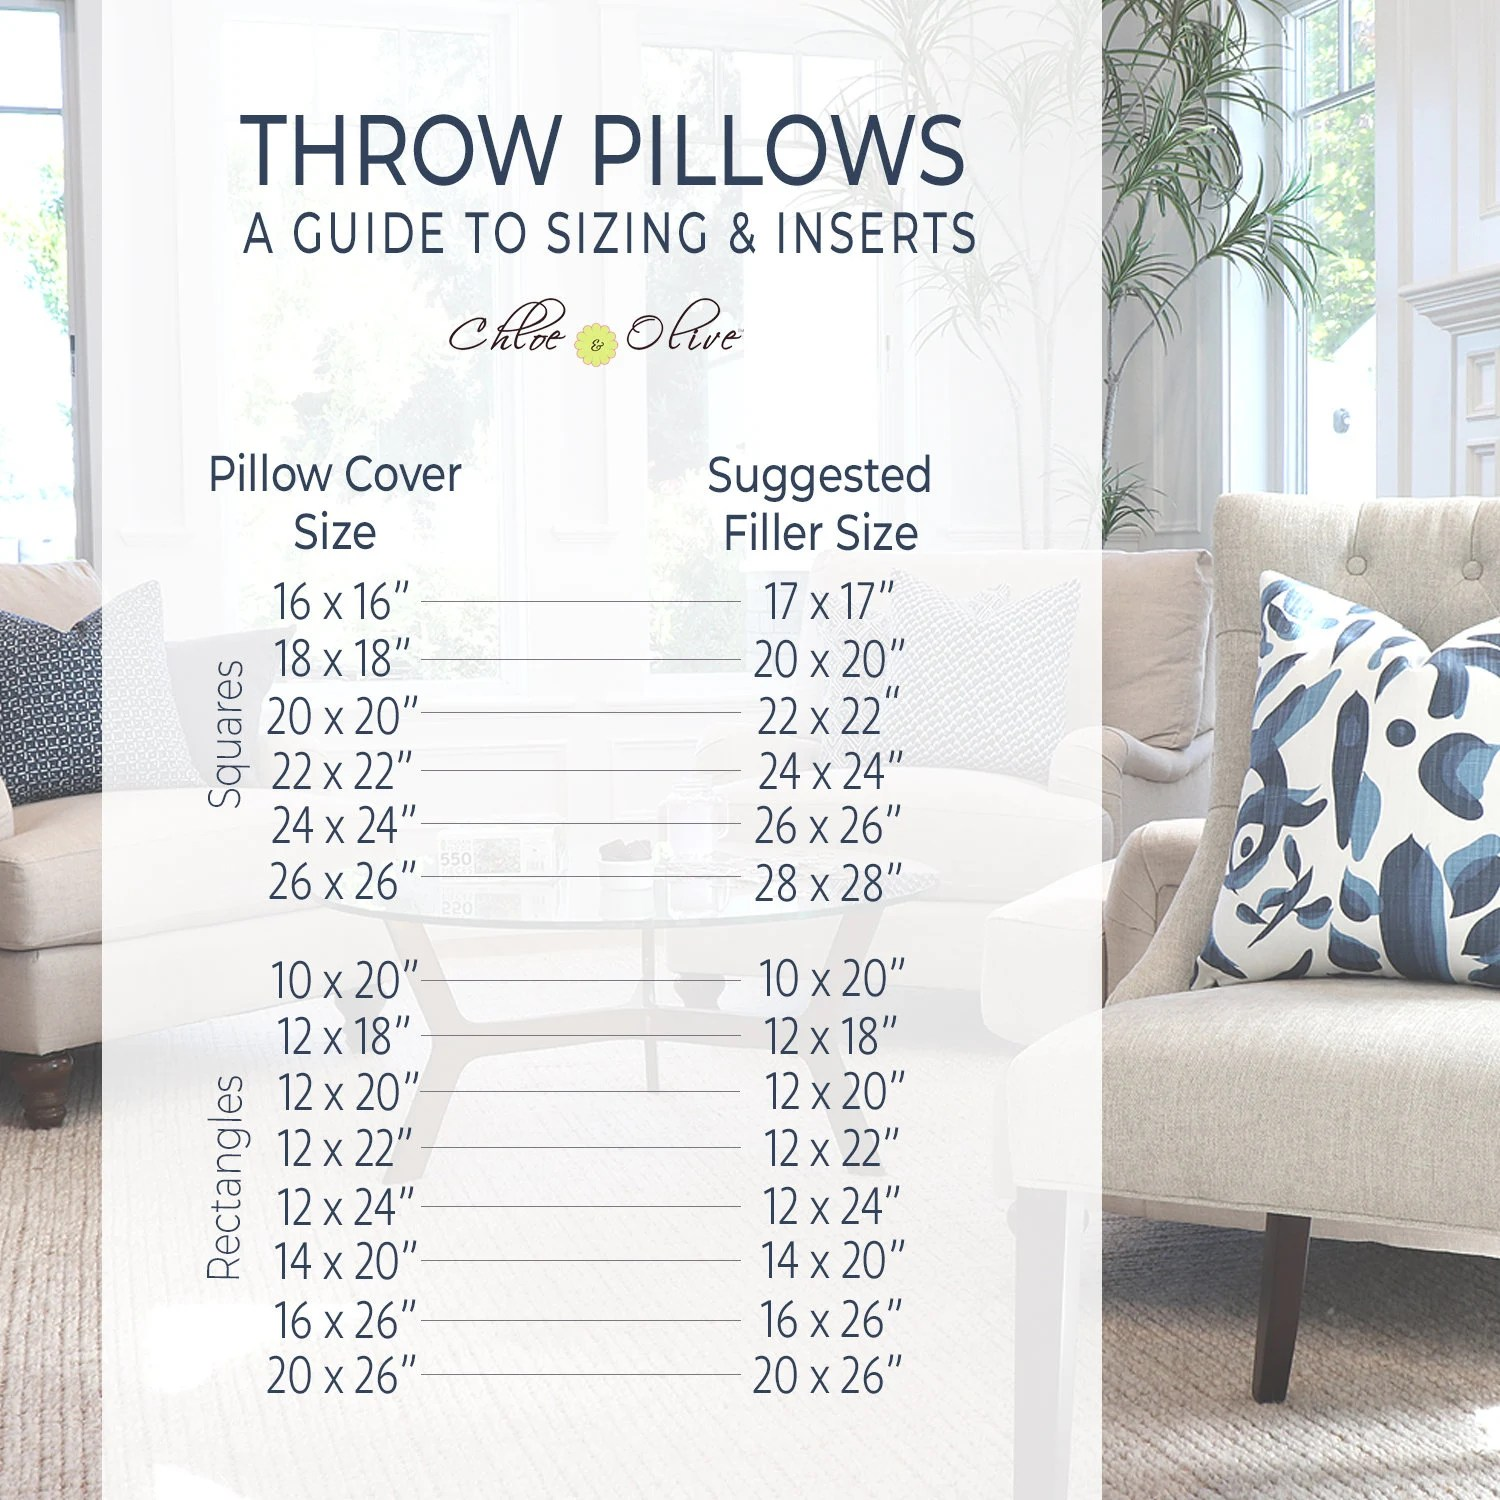 ready tos hip blue and white modern polka dot throw pillow cover cushion case for couch jellybean blueberry